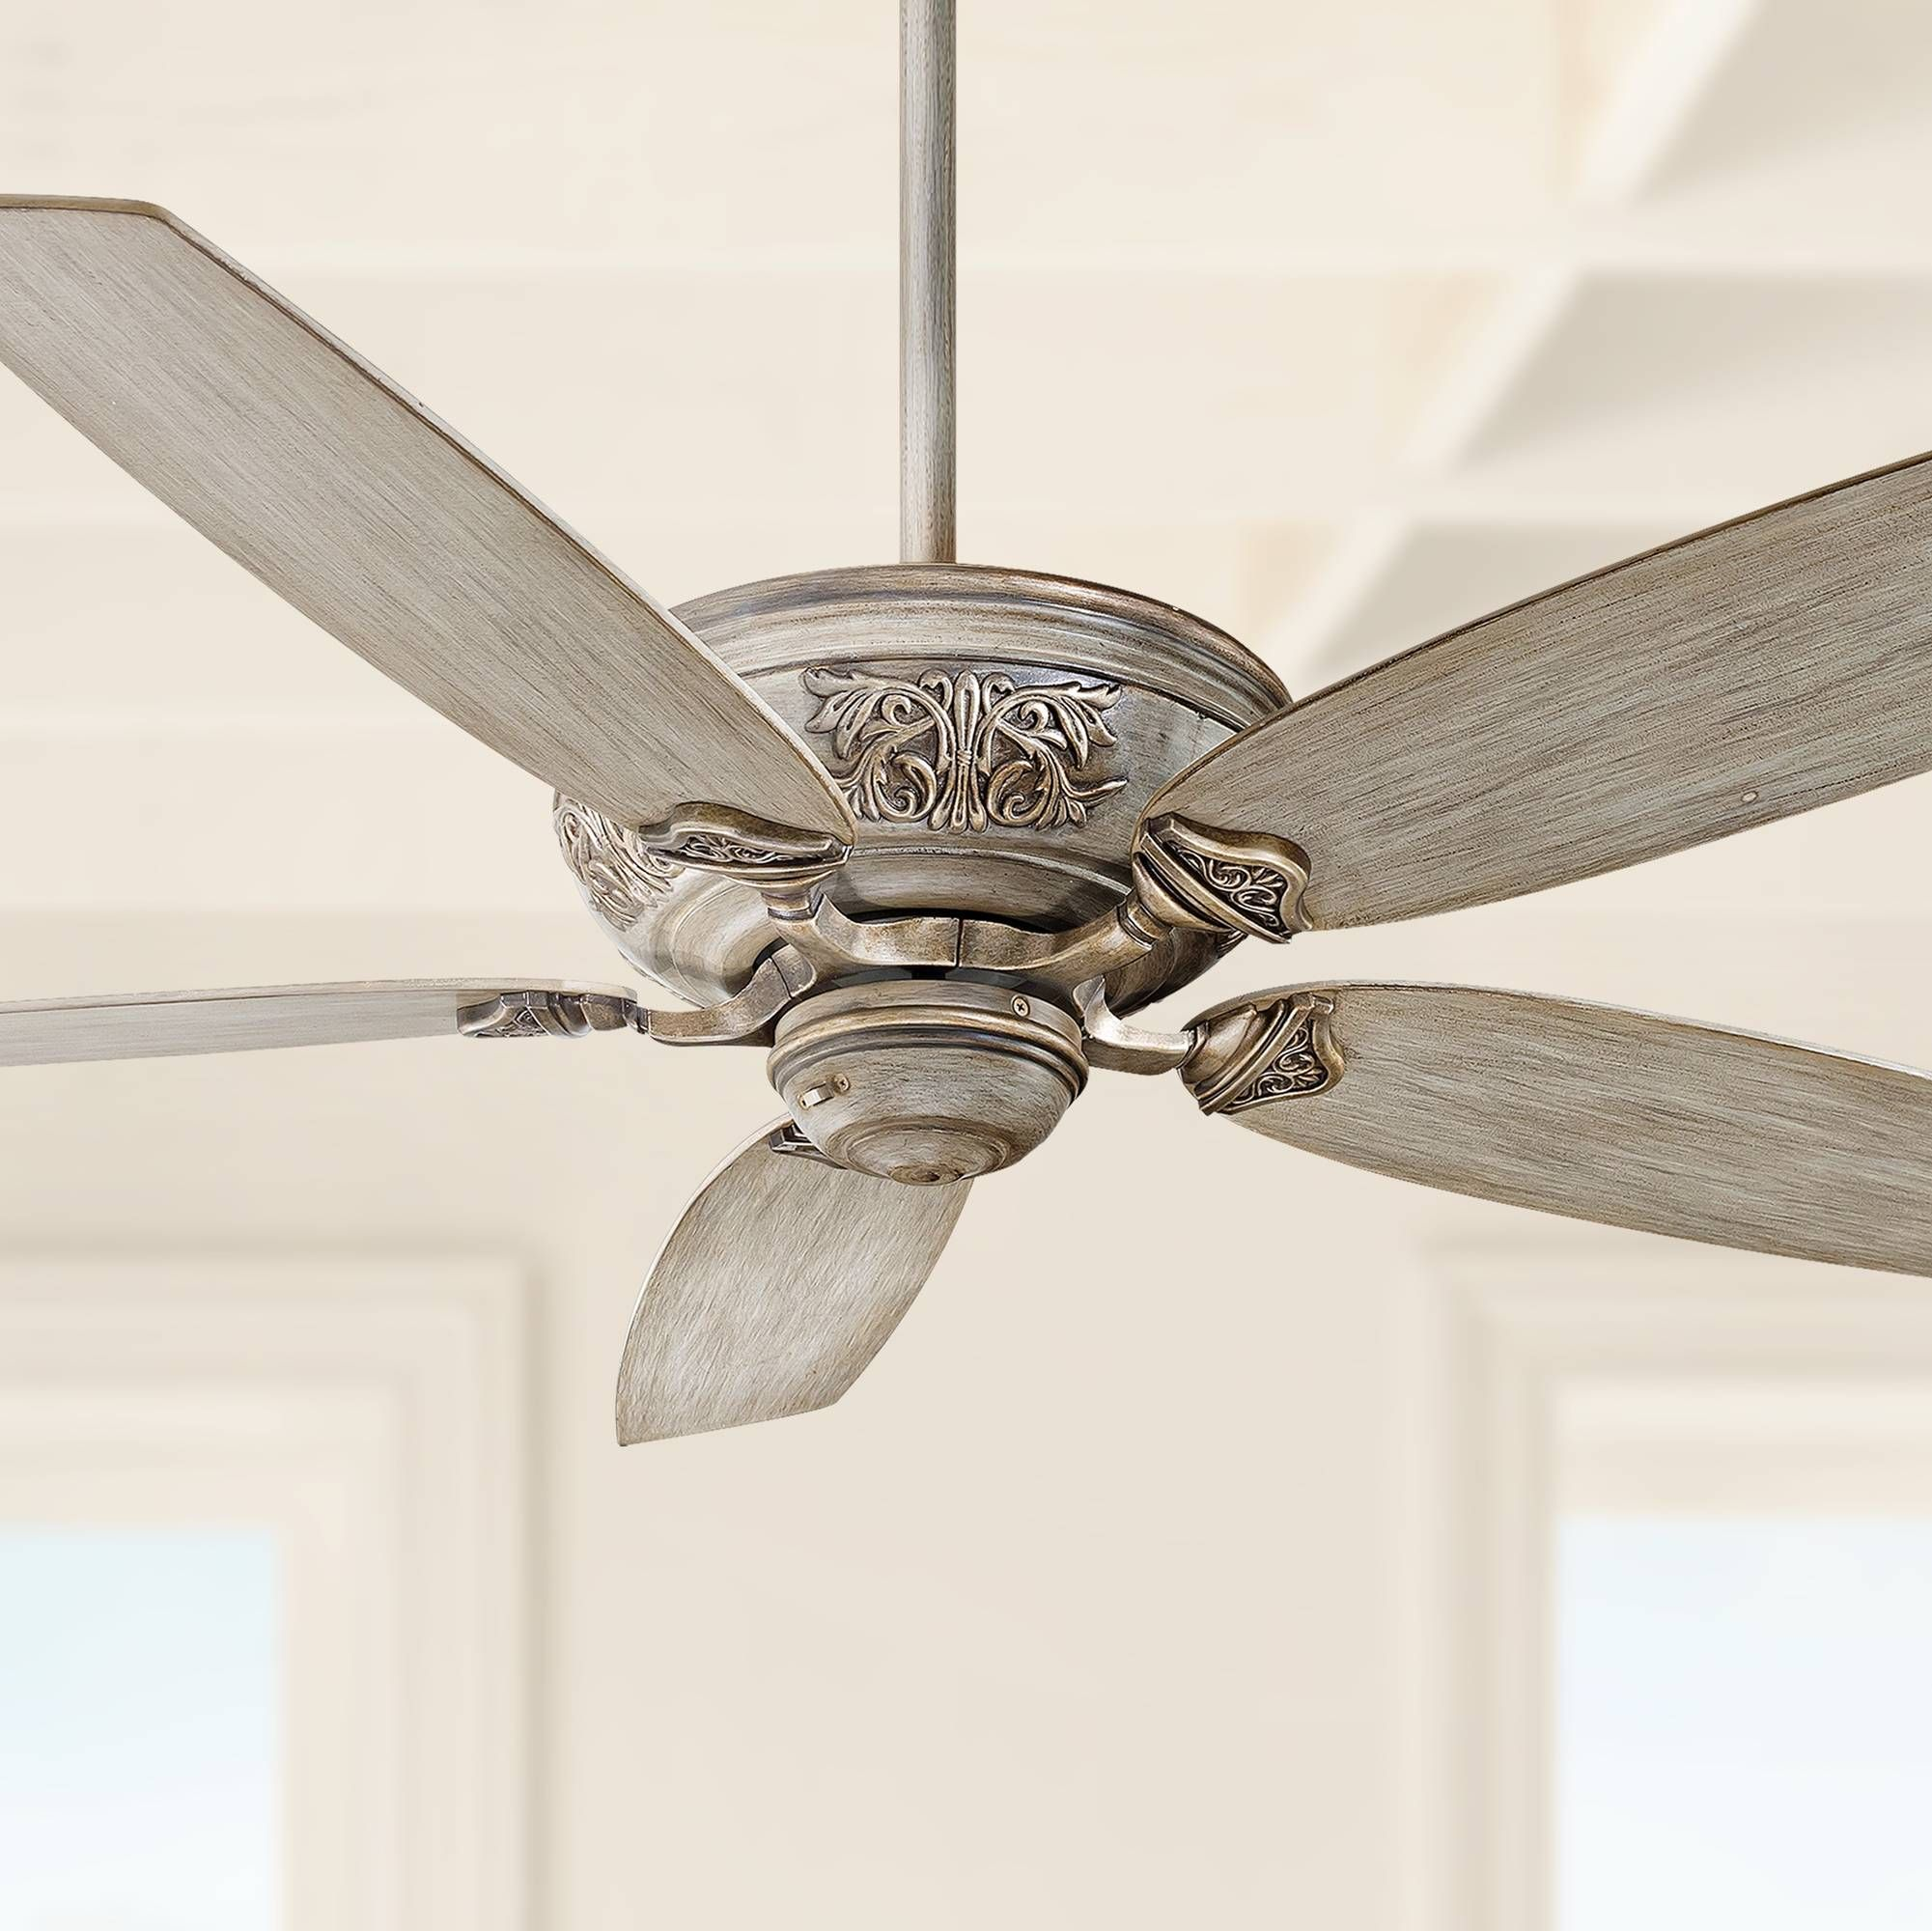 breeze lamps refreshing and blade walnut with this contemporary fans ceiling of bronze solid style pin wood at machine stained five irene fan matthews cut space plus blades the